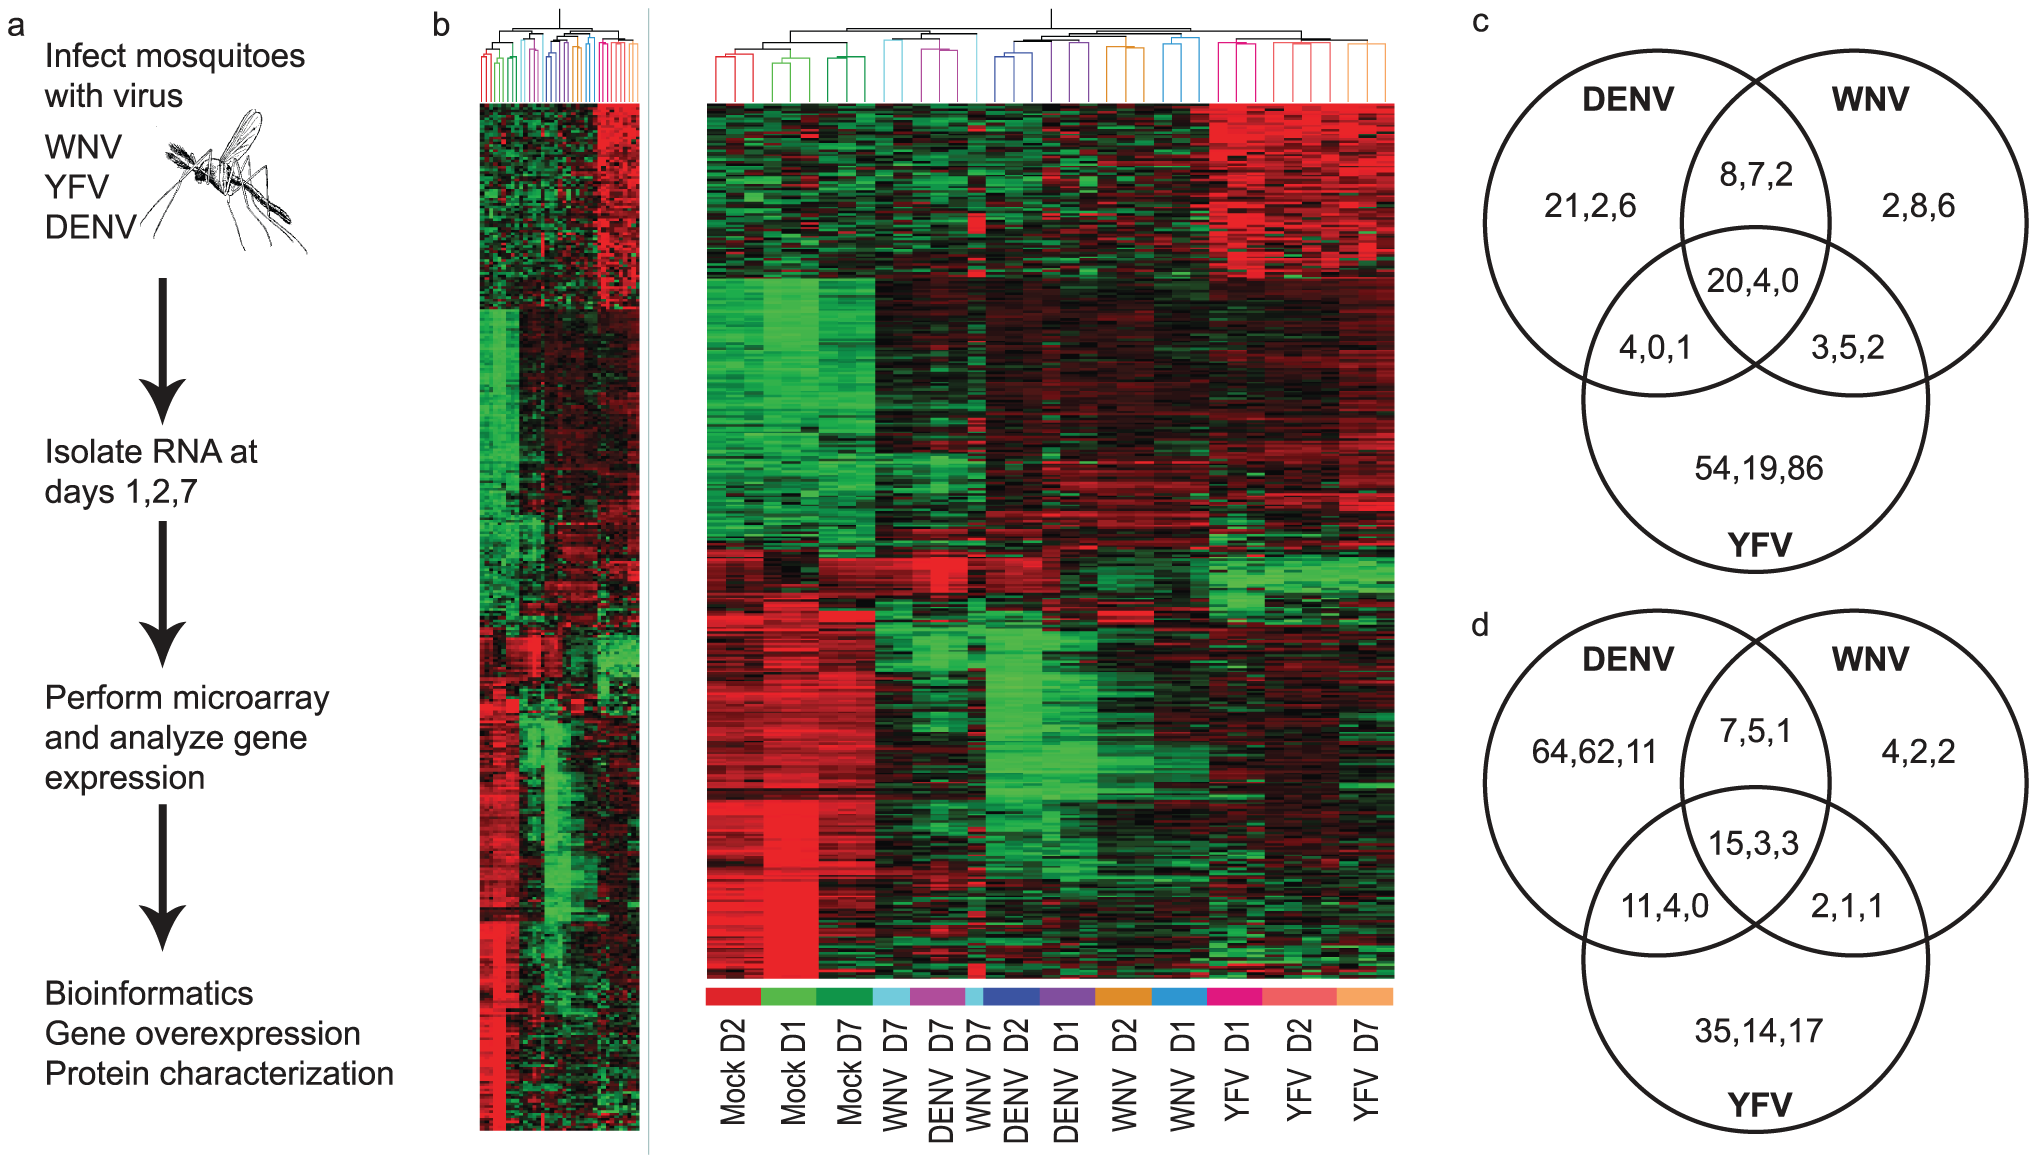 Genome-wide microarray analysis of the mosquito transcriptome during WNV, DENV and YFV infection.